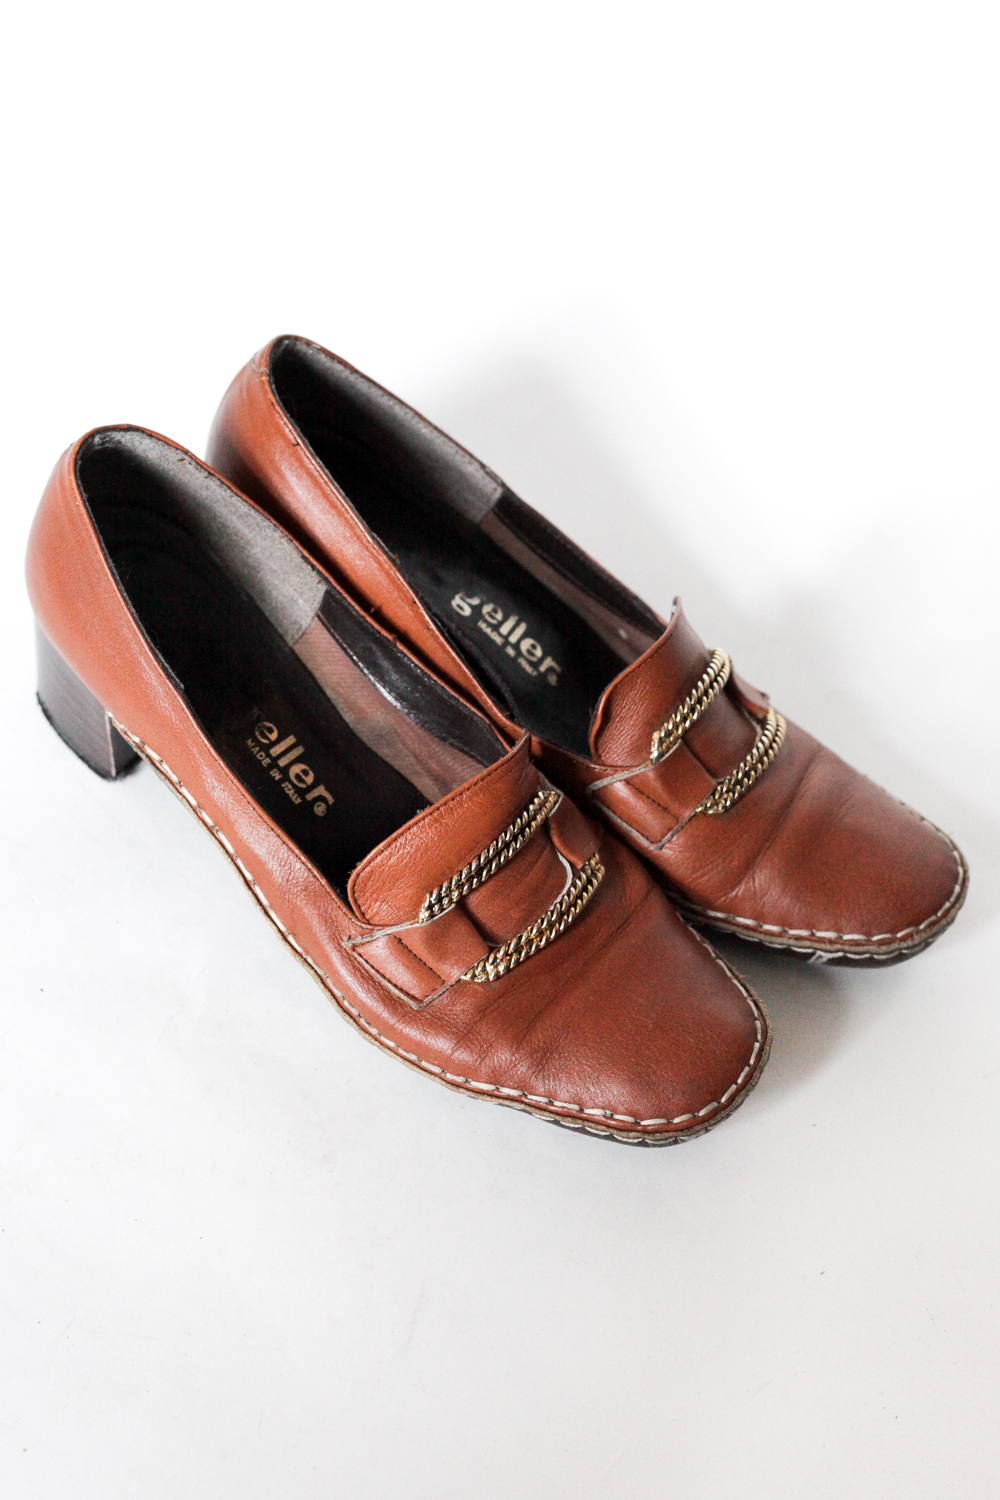 SHOES — THE BROWNSTONE COWBOYS